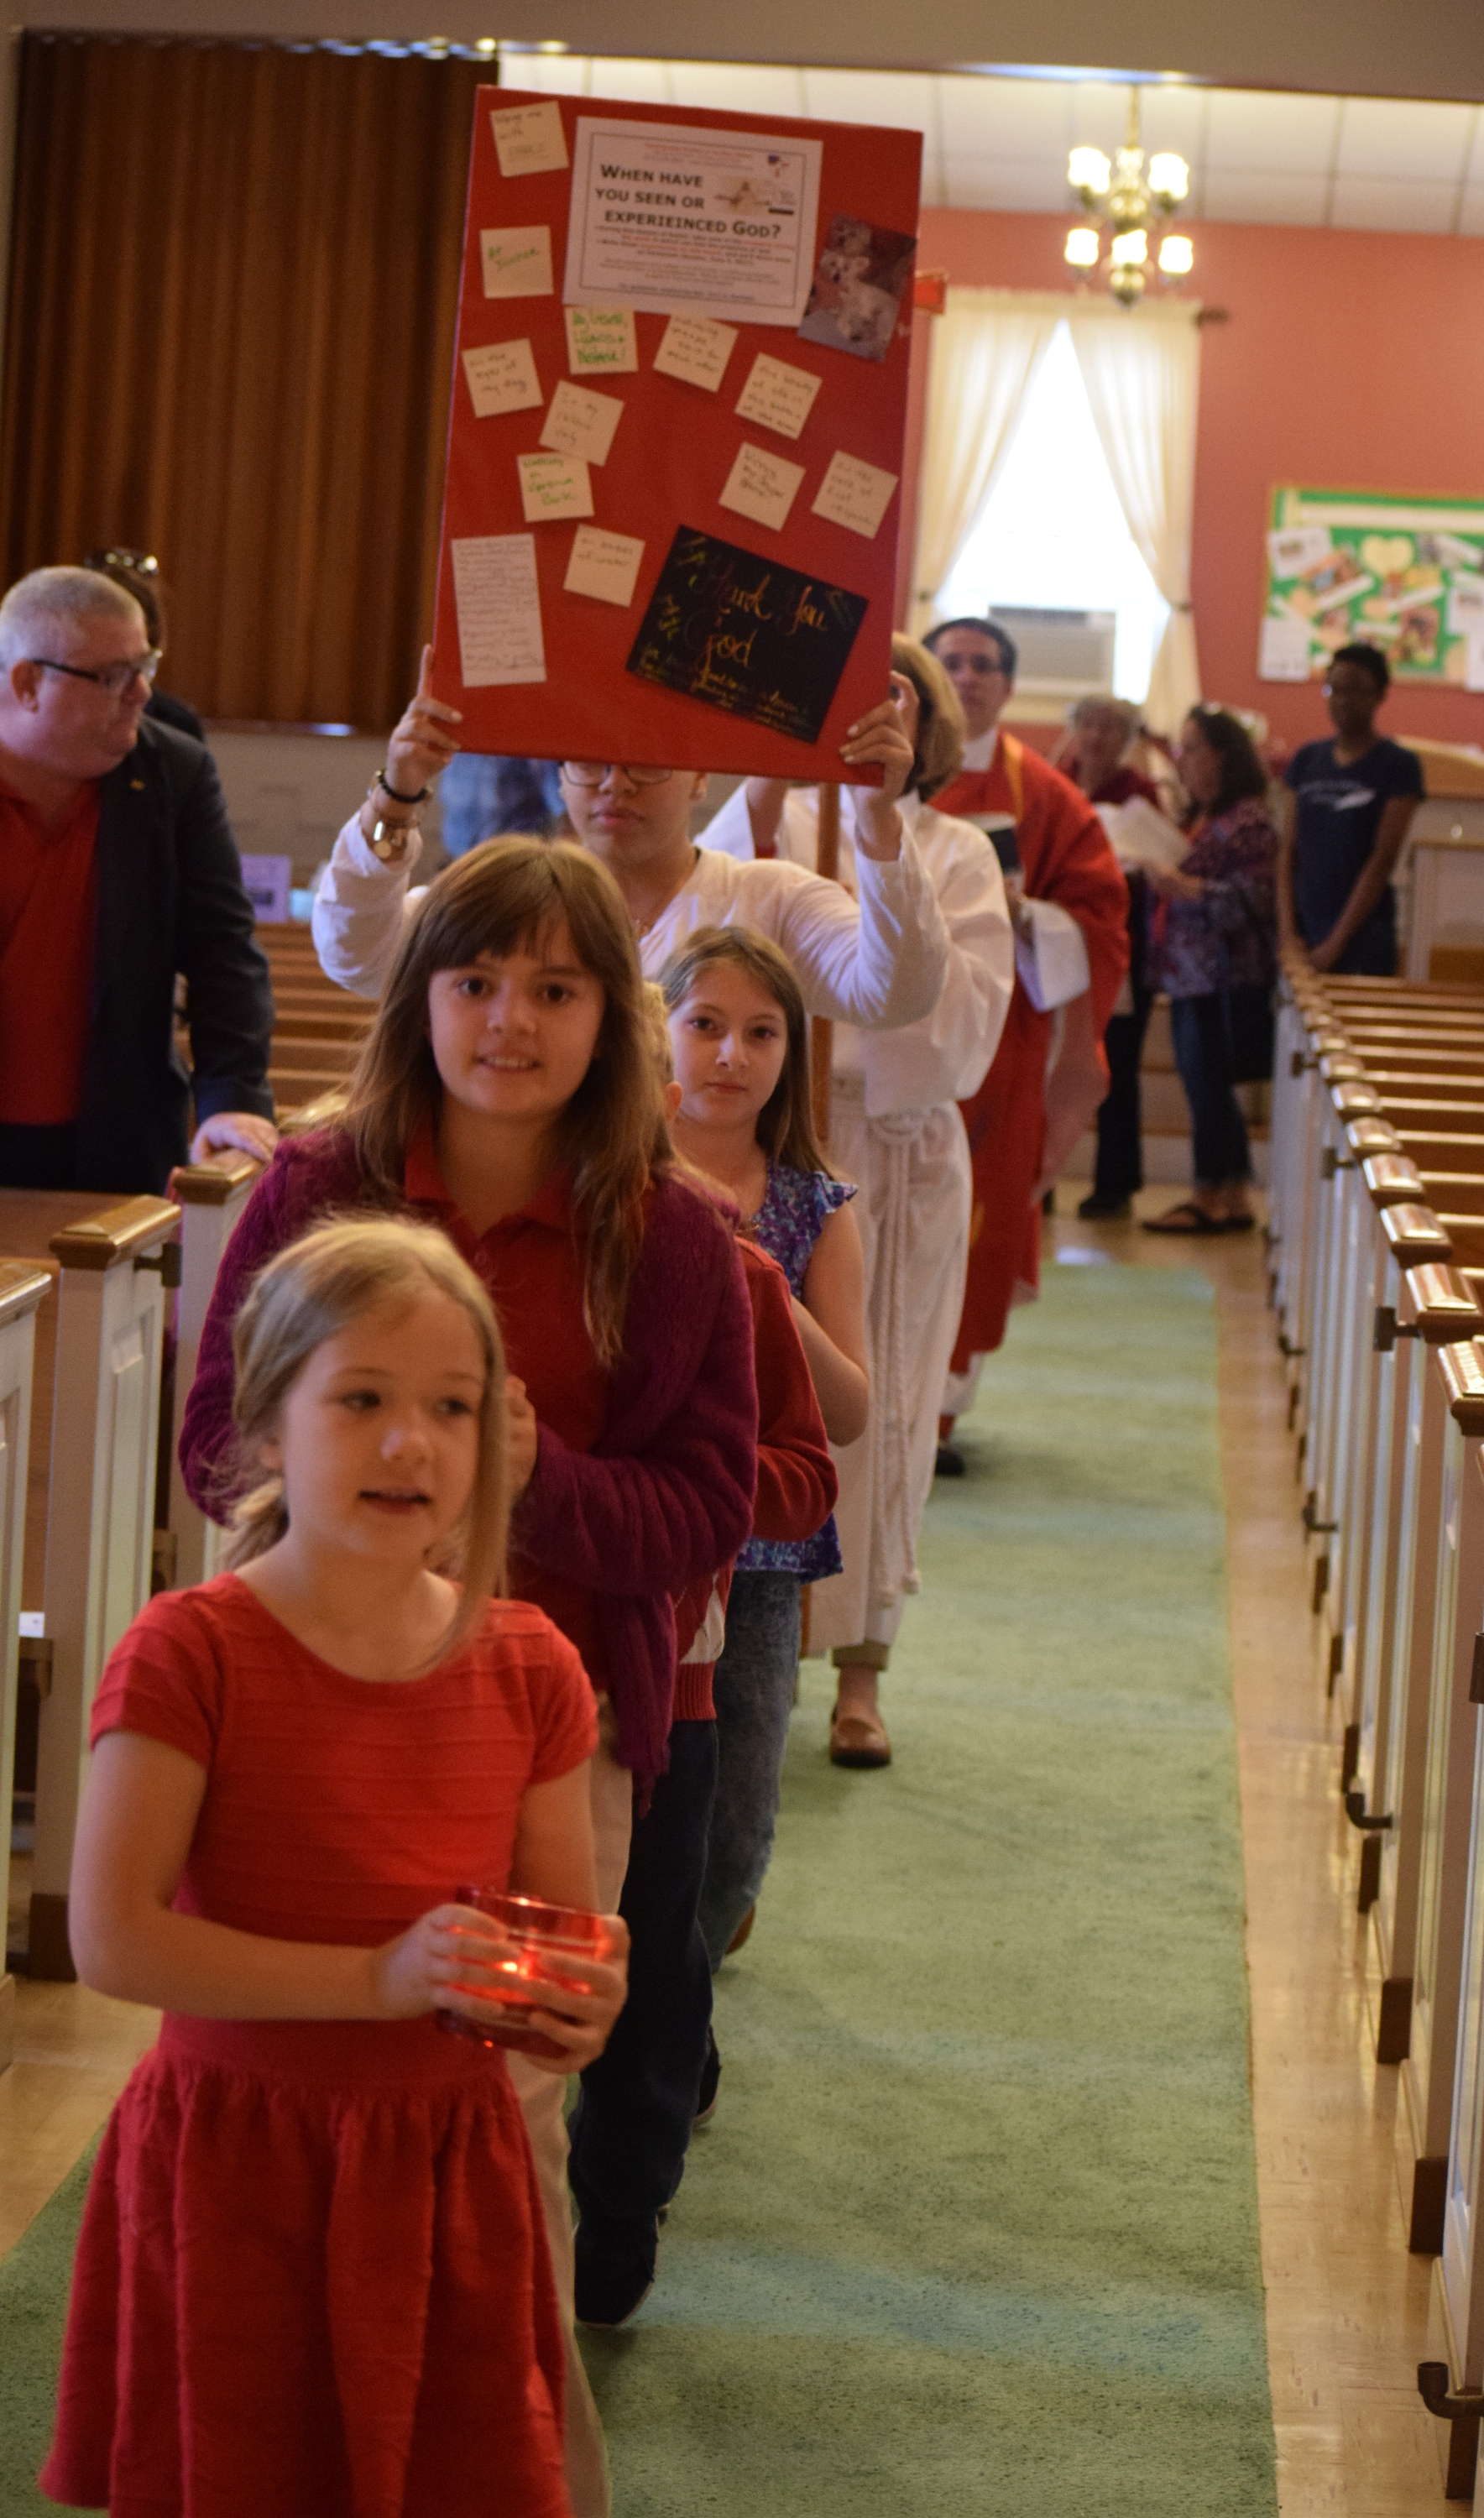 Sunday School Kids Lead the Procession